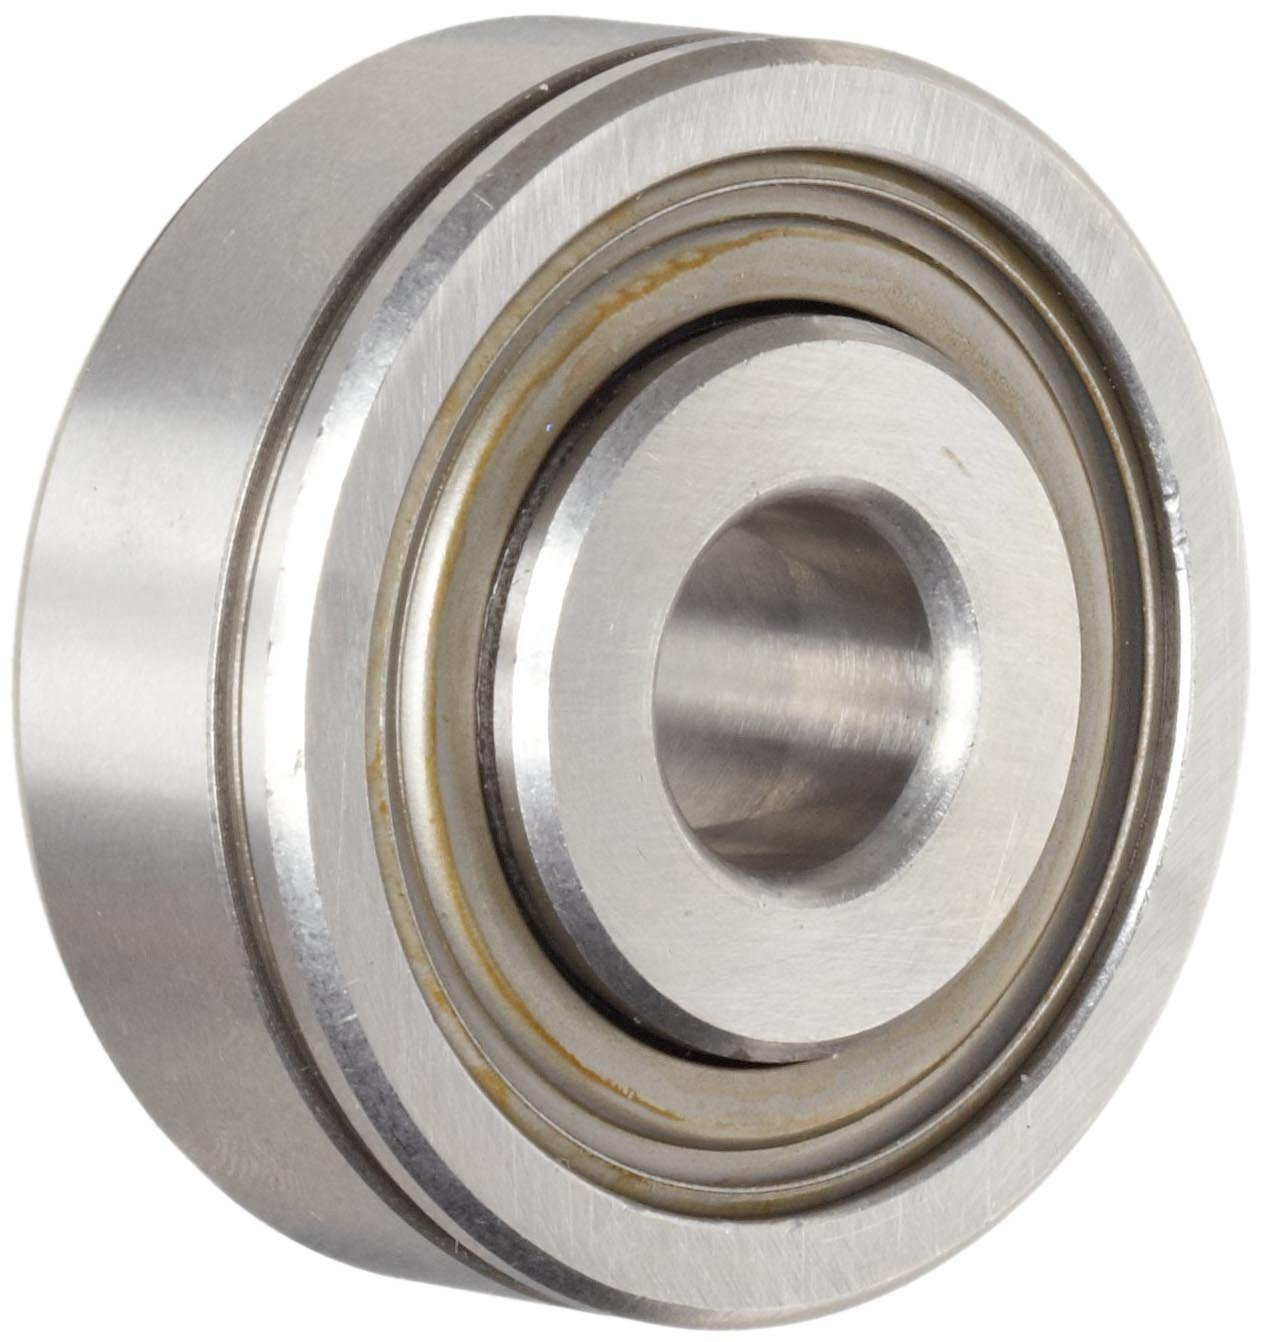 Nice Ball Bearing 7508DL Heavy Duty Double Sealed, 52100 Bearing Quality Steel, 0.5000' Bore x 1.7500' OD x 0.7500' Width 0.5000 Bore x 1.7500 OD x 0.7500 Width RBC Bearings